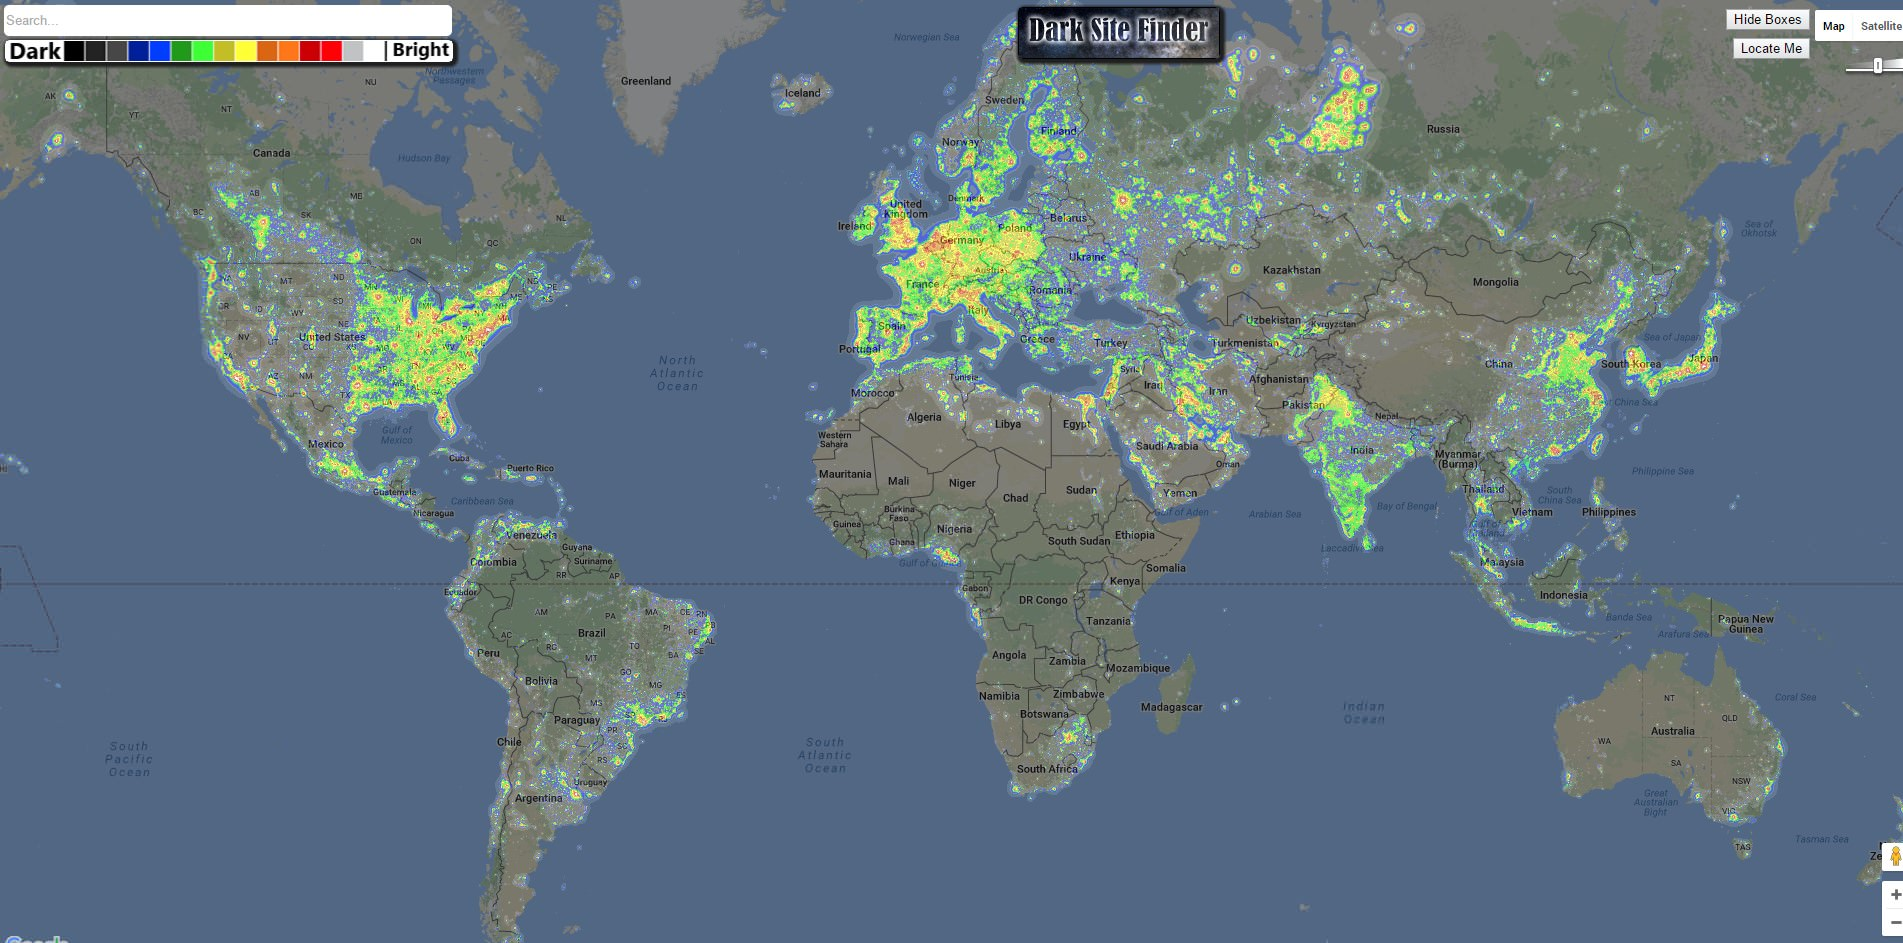 DarkSiteFinder.com Light Pollution Map image